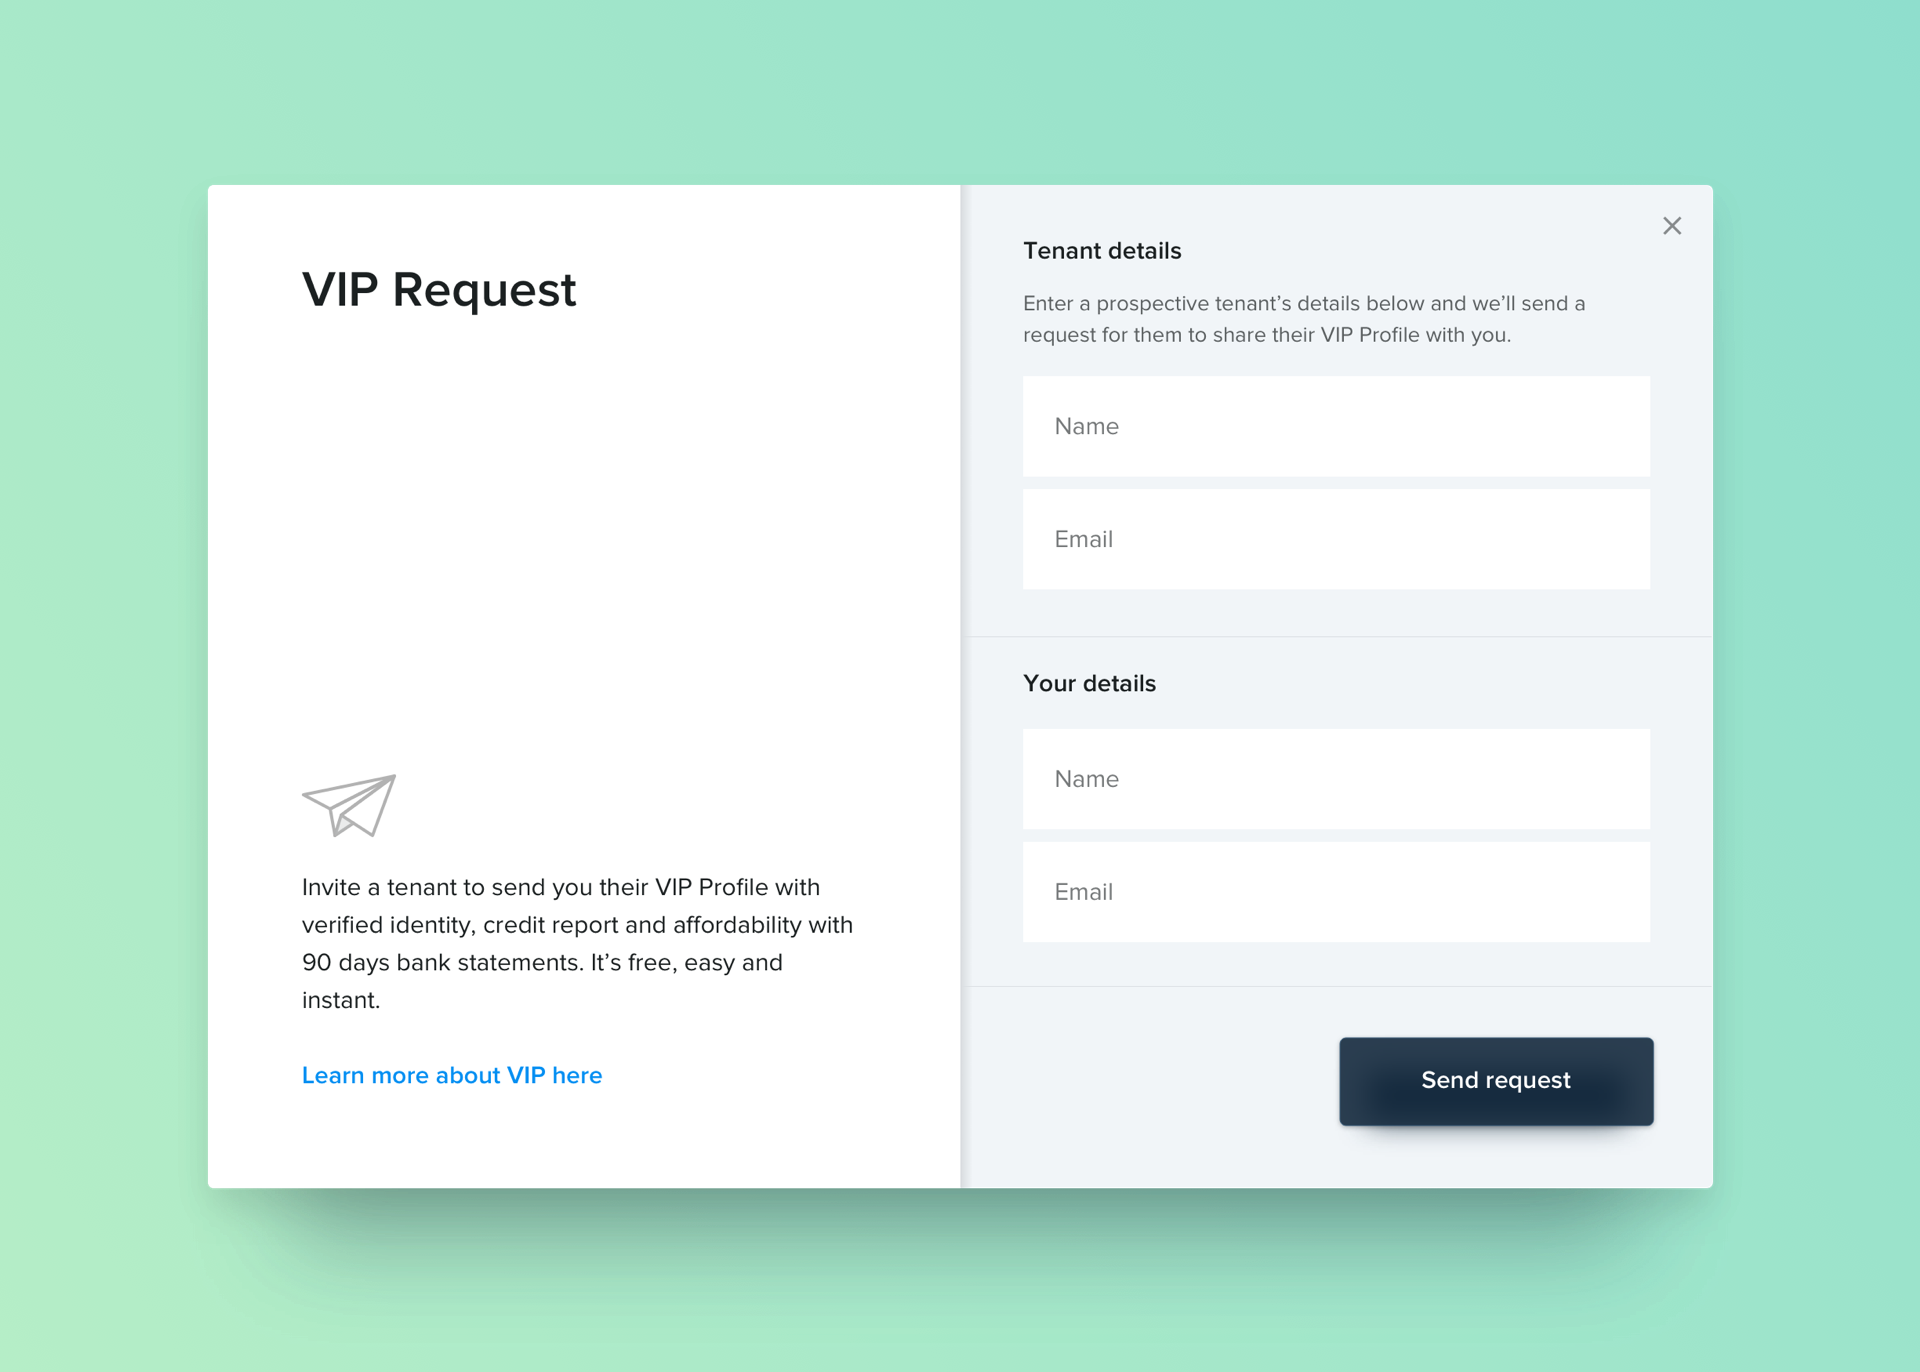 Requestinga VIP Profile - With VIP Request you simply invite any potential tenant to share their VIP Profile with you. Once they accept your Request, we'll send you an email with a link to view their Profile online. It's 100% free to Request.Request a VIP →